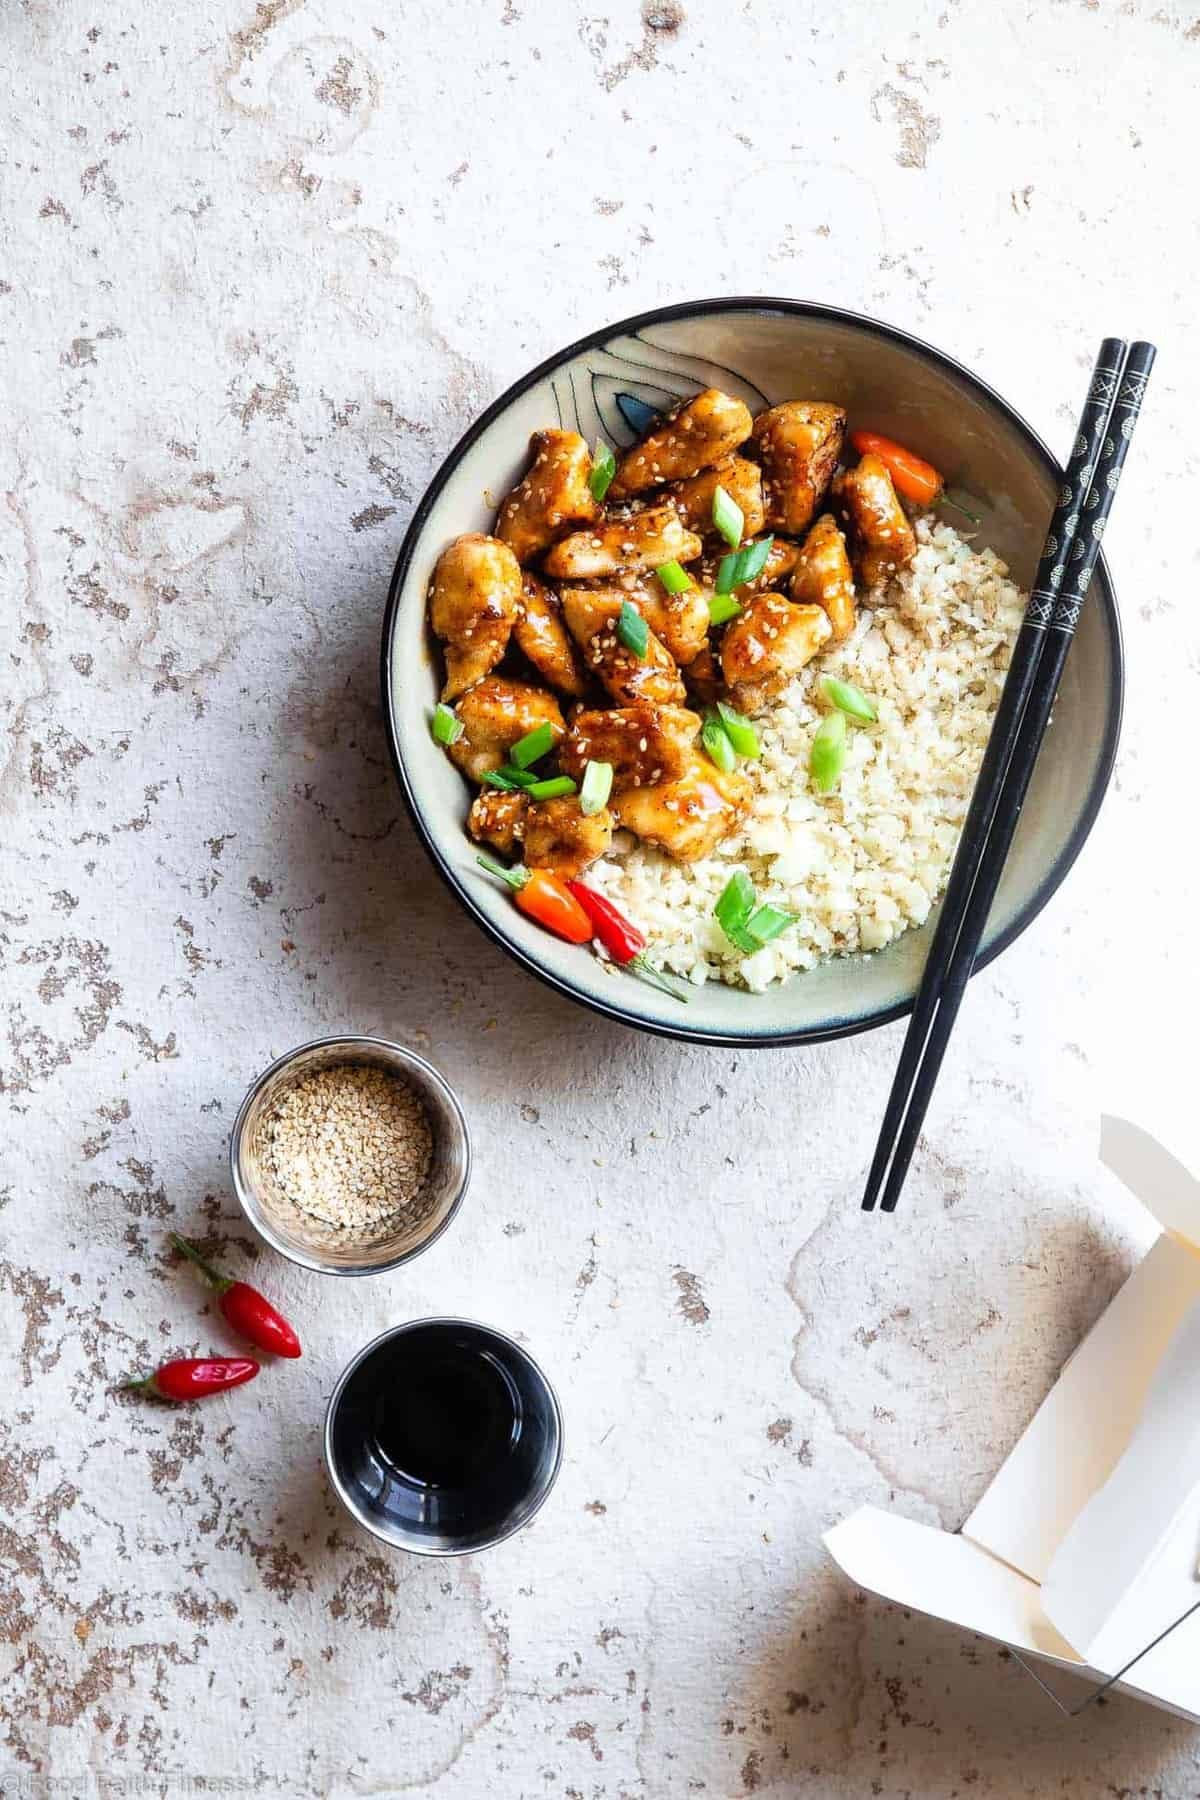 Paleo Easy Gluten Free Healthy Sesame Chicken Recipe -This paleo friendly, and sugar/grain/dairy and gluten freeCRISPY easy Sesame Chicken tastes just like takeout but is SO much better for you! Aquick dinner that the whole family will love! | #Foodfaithfitness | #Glutenfree #Paleo #Whole30 #Sugarfree #Healthy